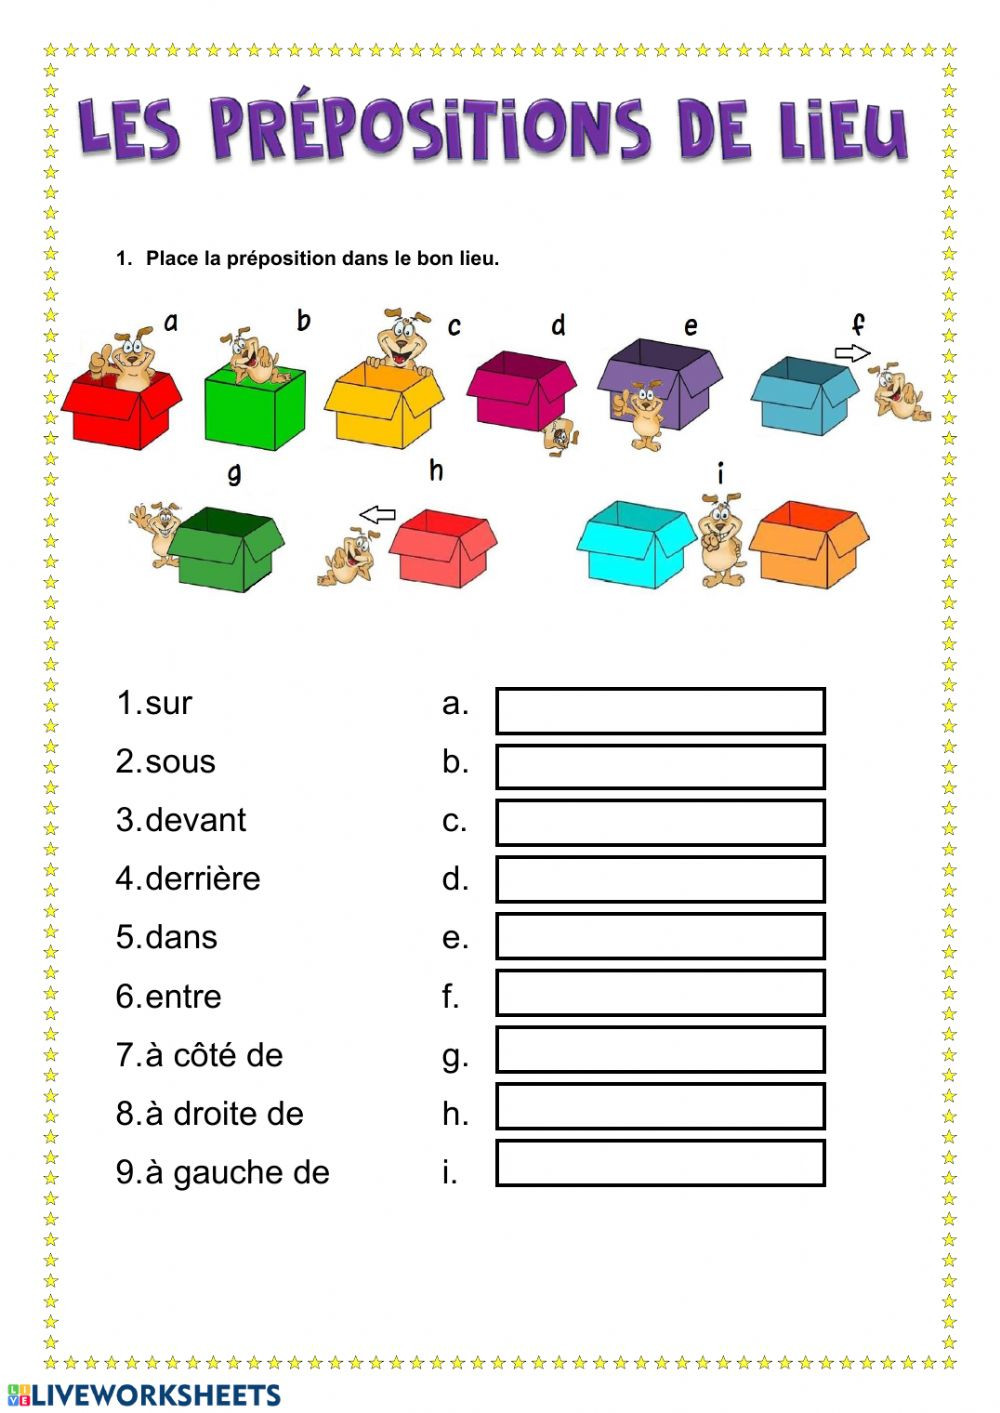 Prepositions Worksheets Middle School Les Prépositions Lieu Interactive Worksheet Prepositions